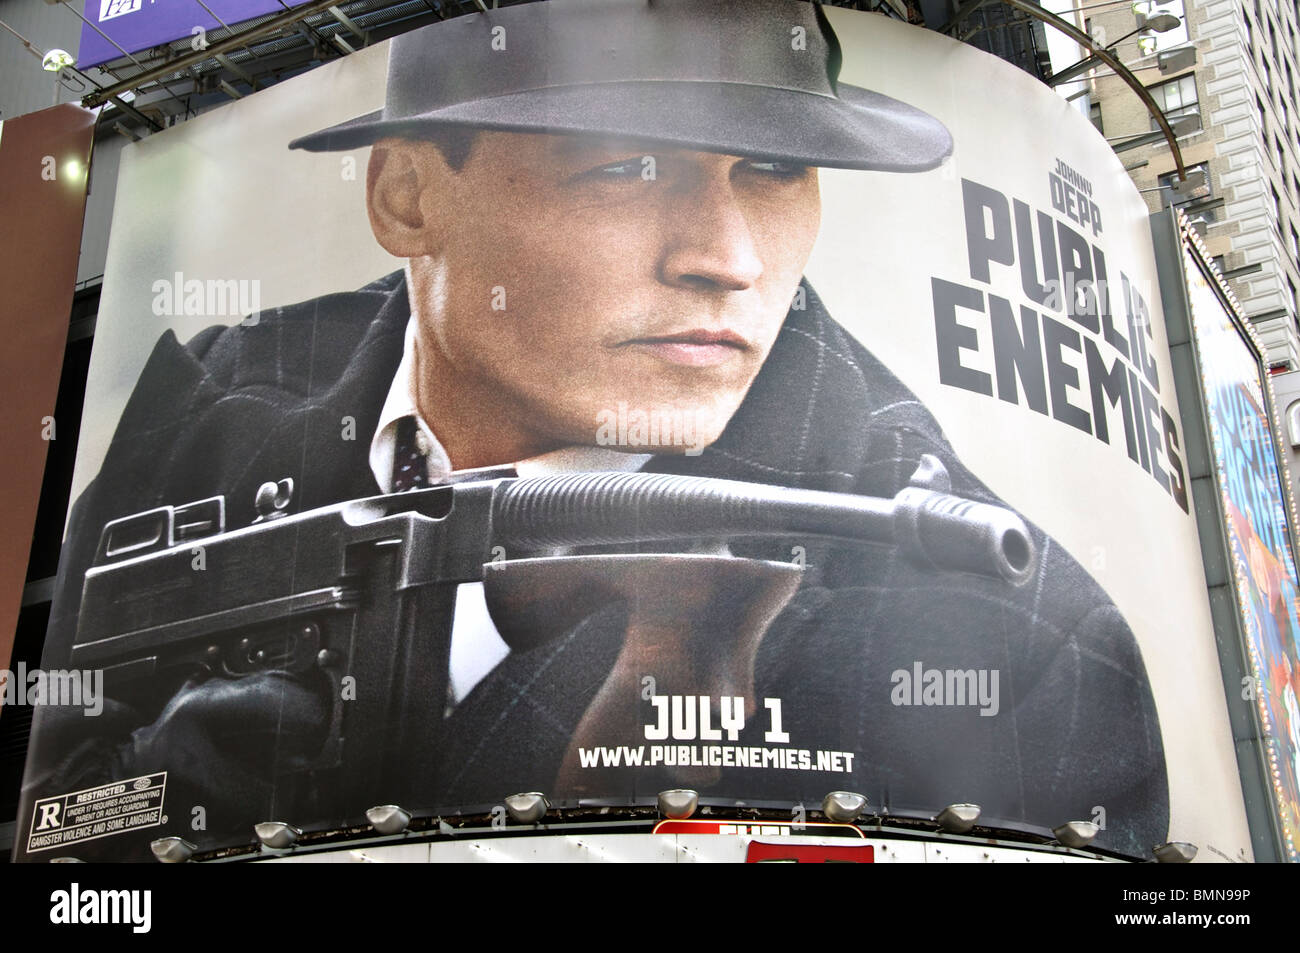 Public Enemy ad, Times Square, New York City, USA - Stock Image